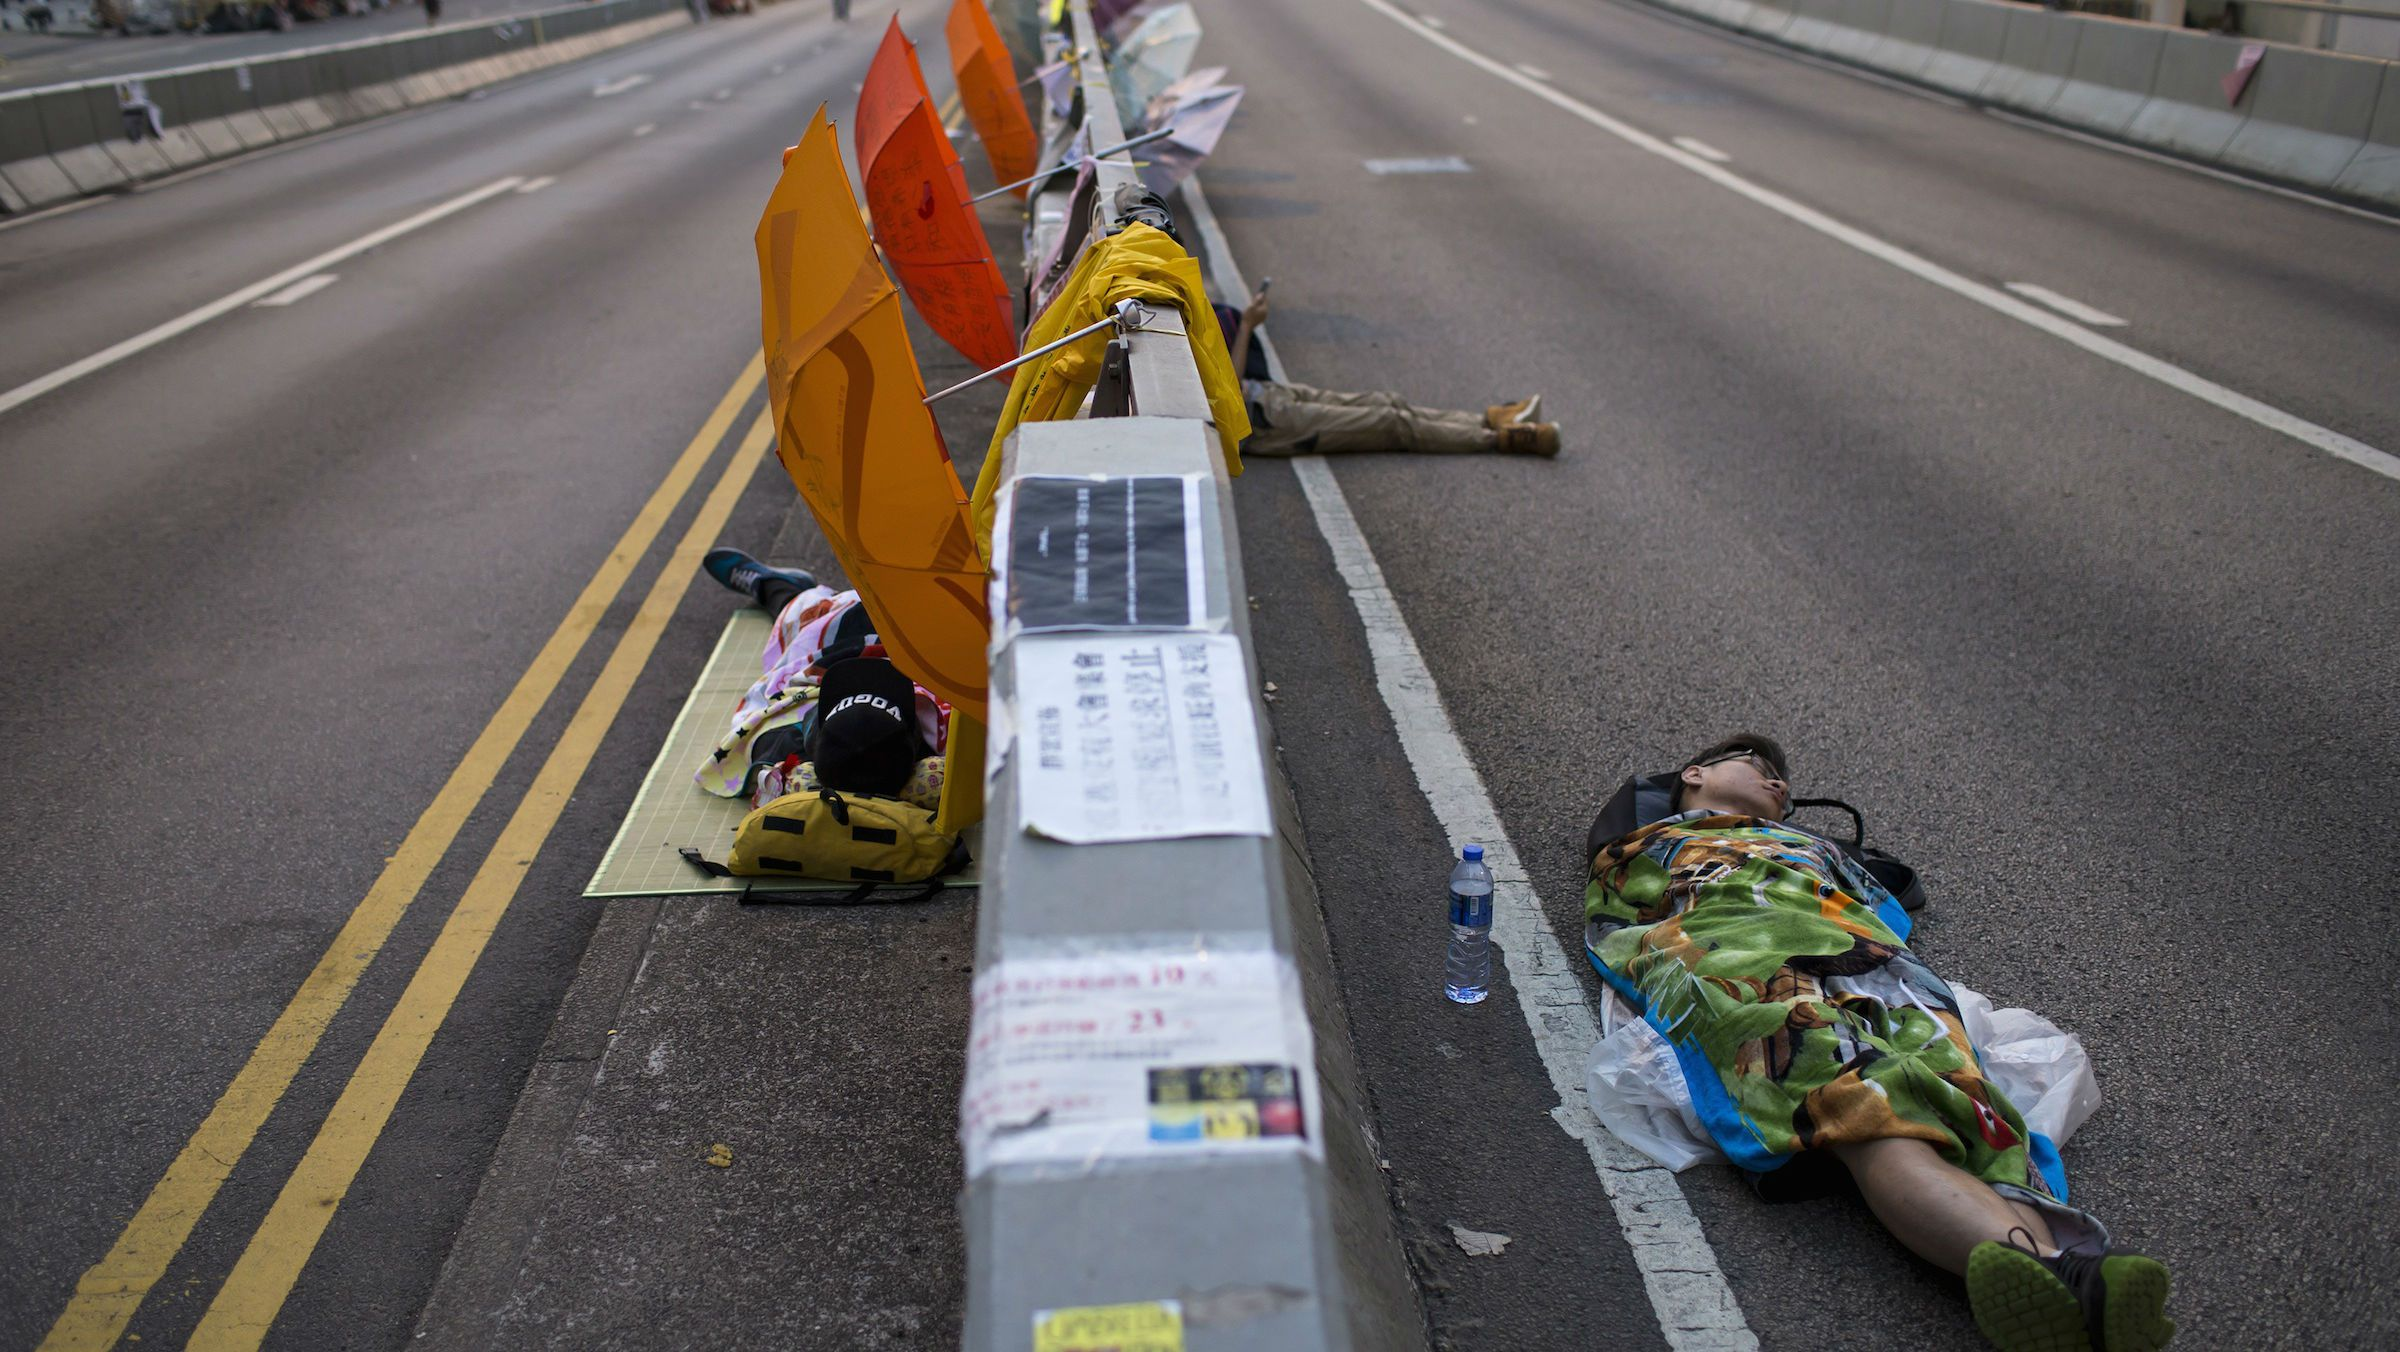 2014Protesters of the Occupy Central movement sleep on a main road leading to the financial Central district being blocked at dawn,